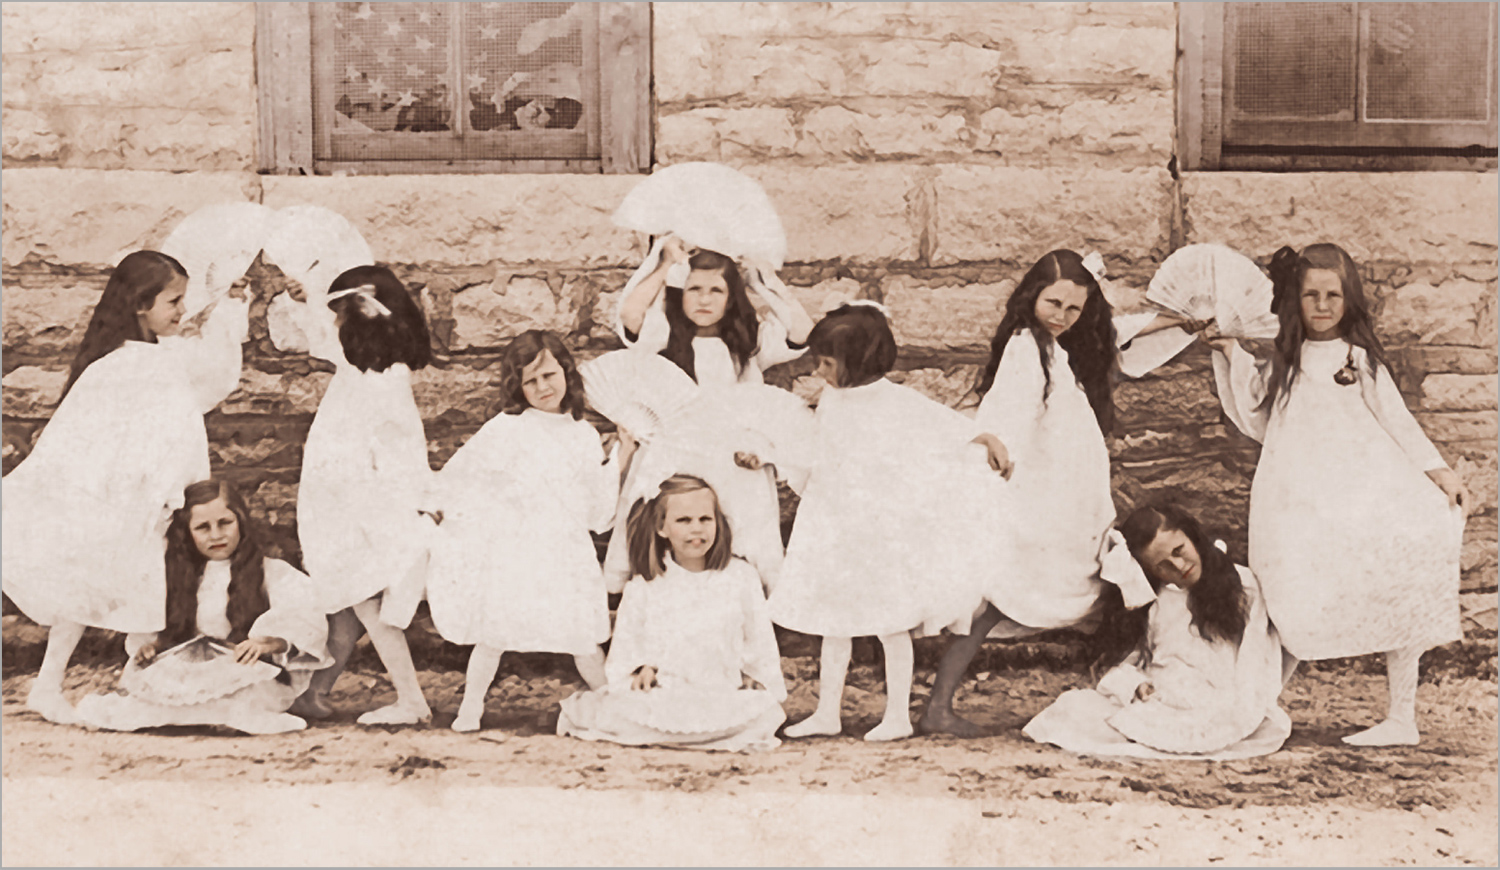 dancing children in white dresses